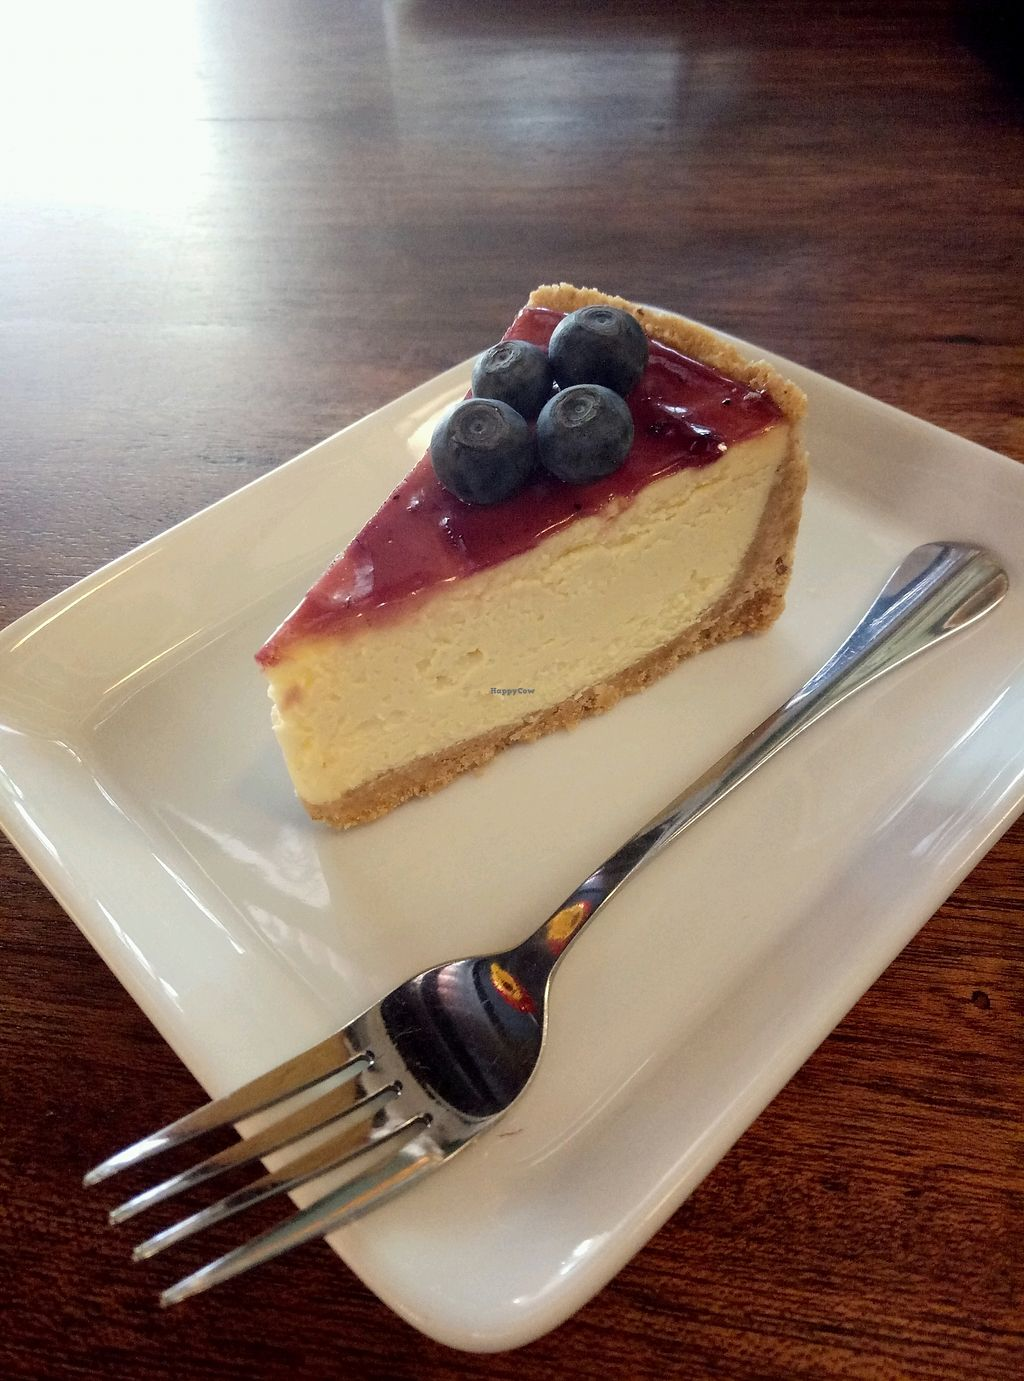 """Photo of Pinxin Vegan Cuisine  by <a href=""""/members/profile/SamanthaBurns"""">SamanthaBurns</a> <br/>Best vegan cheesecake!! <br/> February 13, 2018  - <a href='/contact/abuse/image/83210/358735'>Report</a>"""